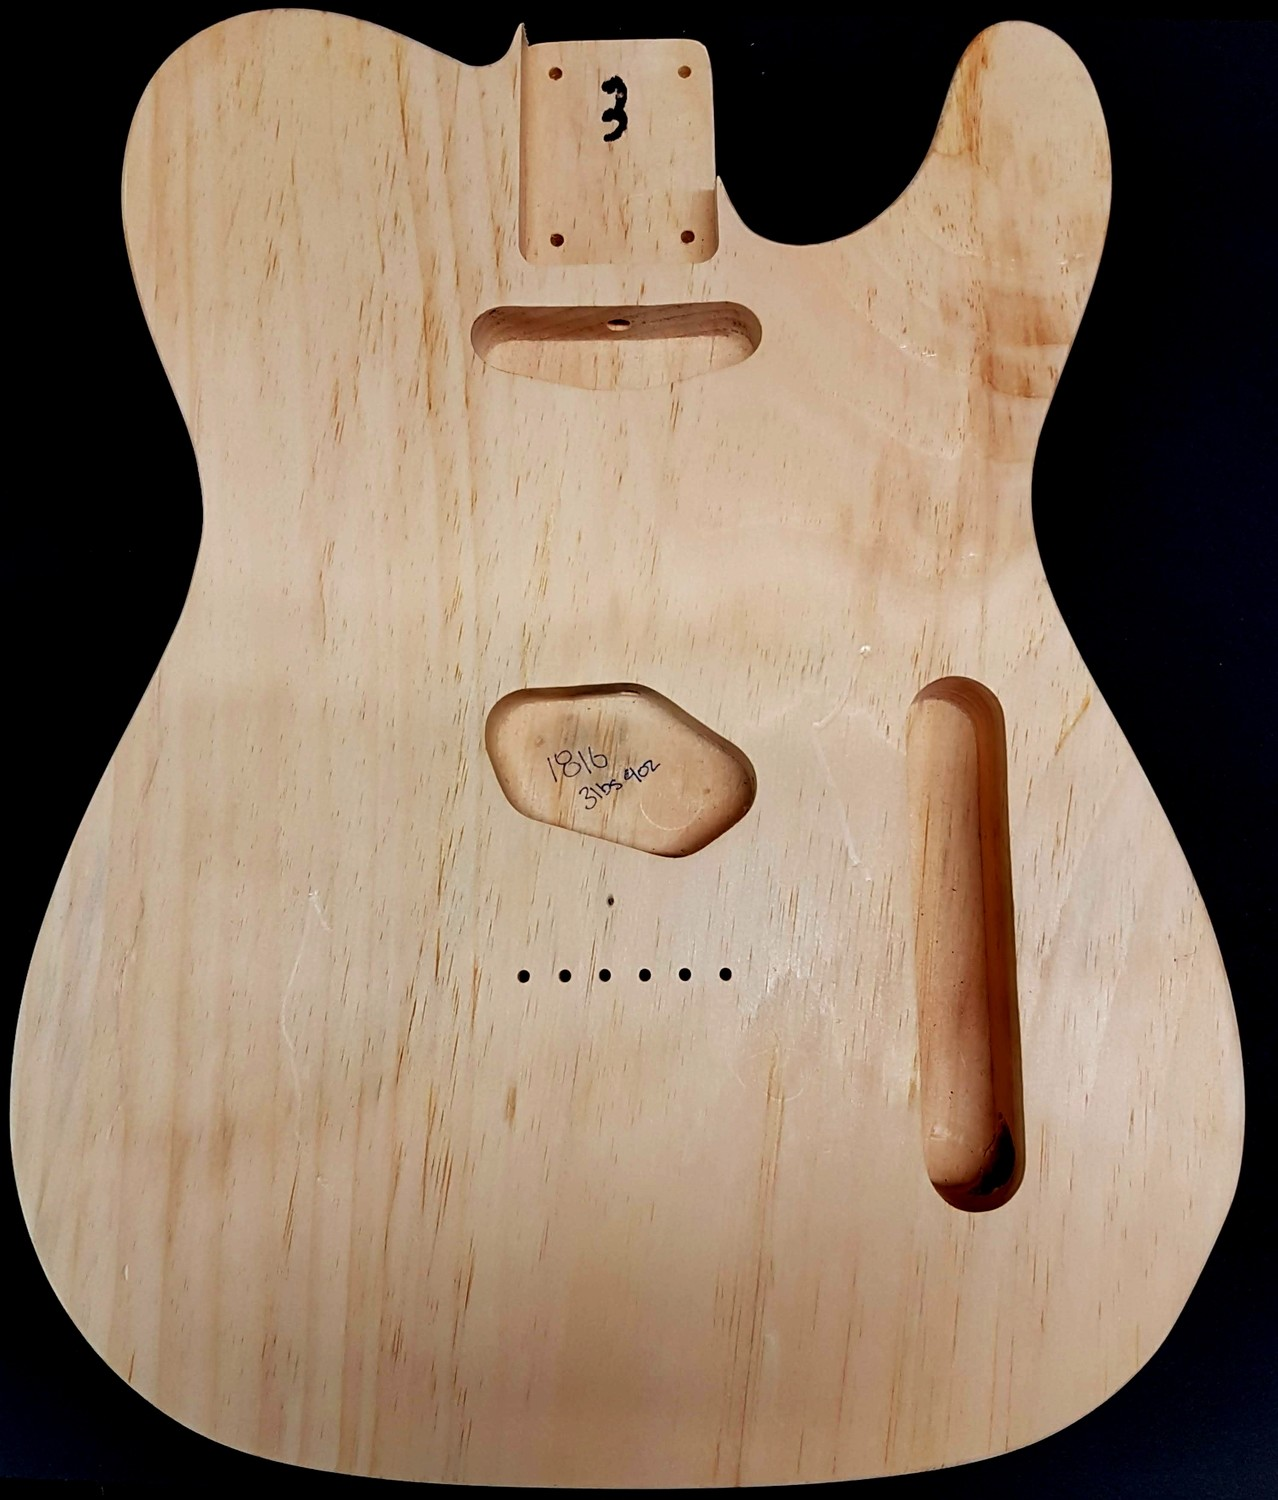 1 Piece Pine telecaster Tele Body 3lbs 9oz Standard routing